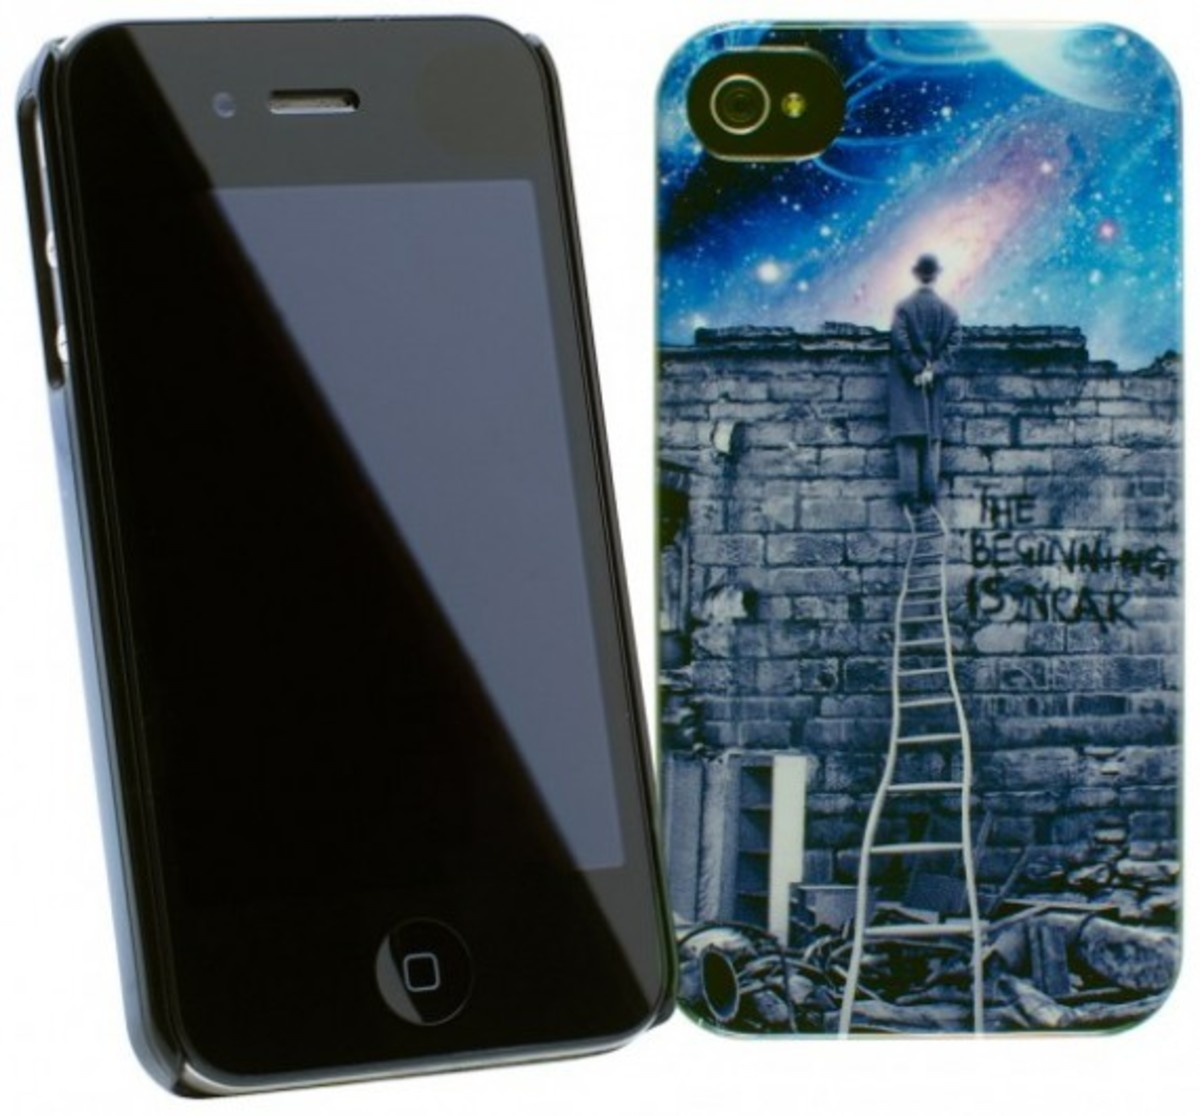 imaginary-foundation-iphone-case-02